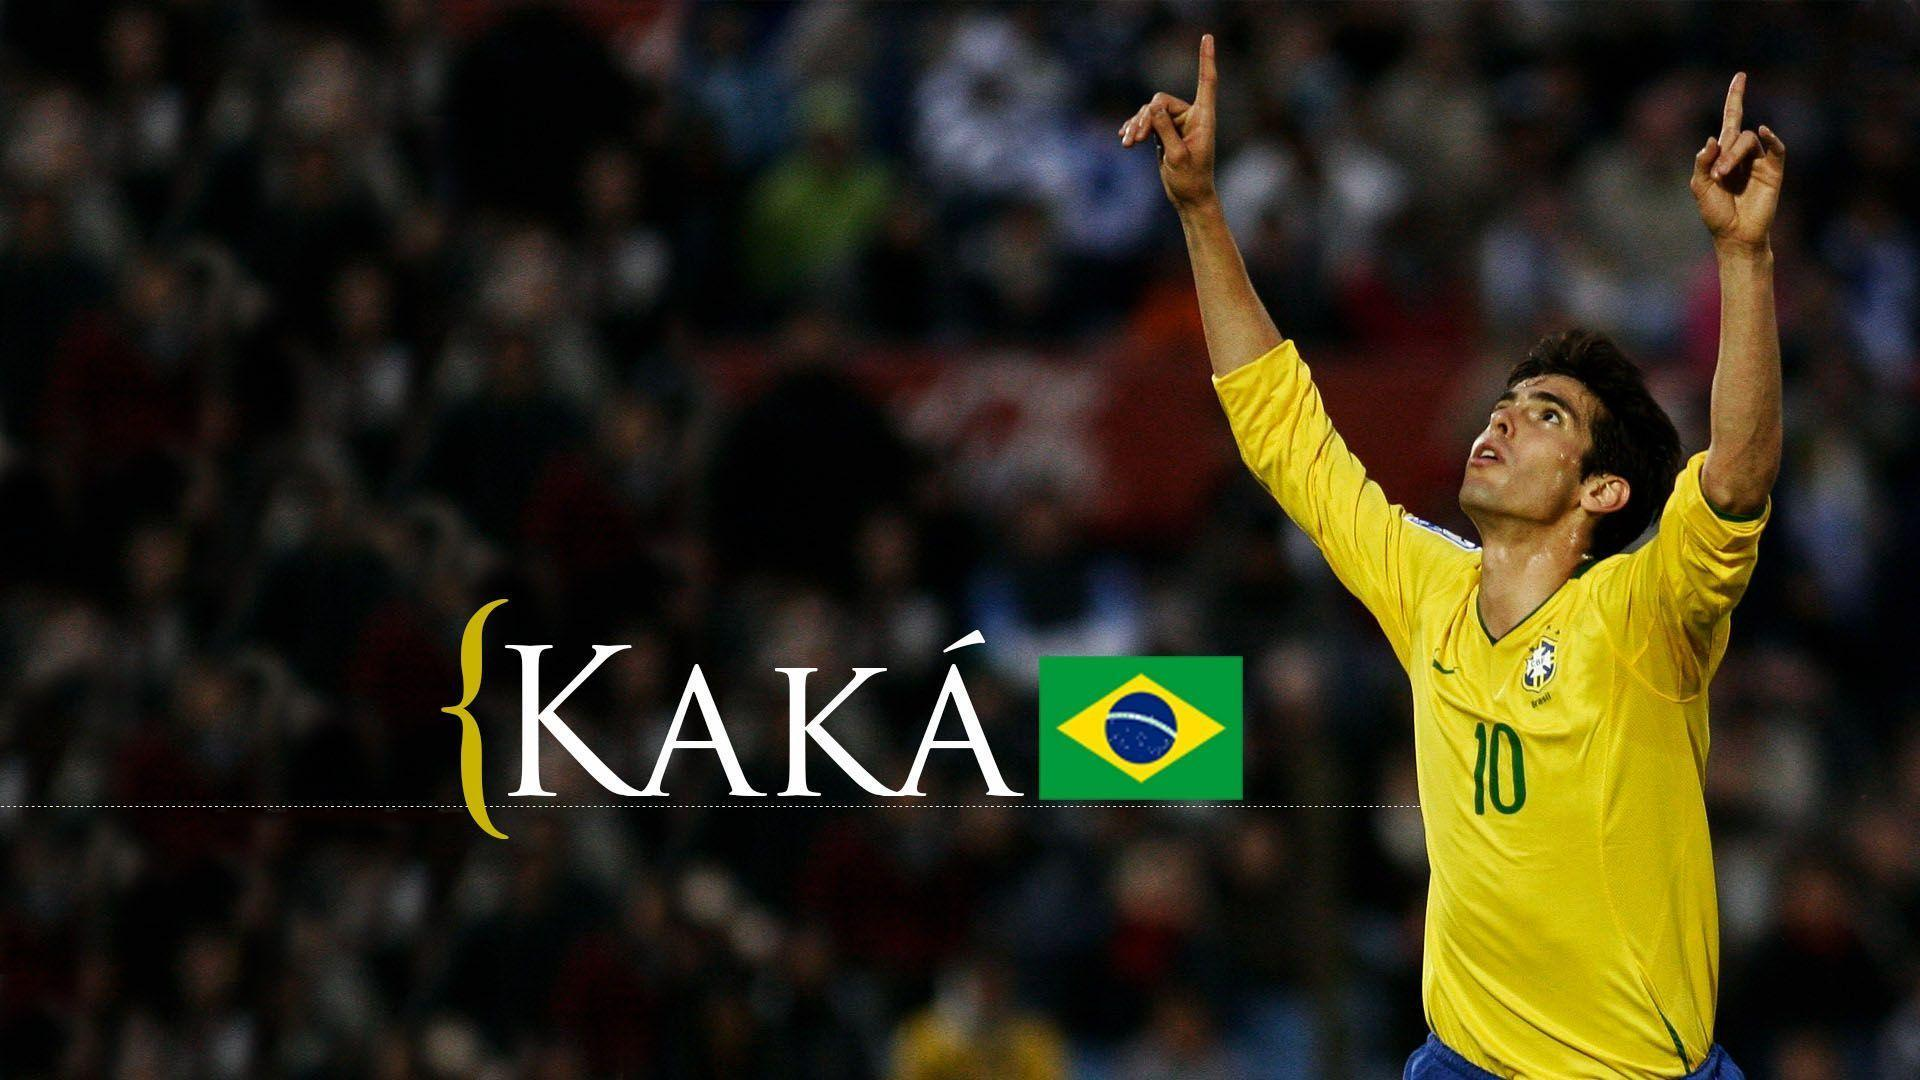 Ricardo Kaka Wallpapers Hd Wallpapers Of Kaka Wallpaper Cave